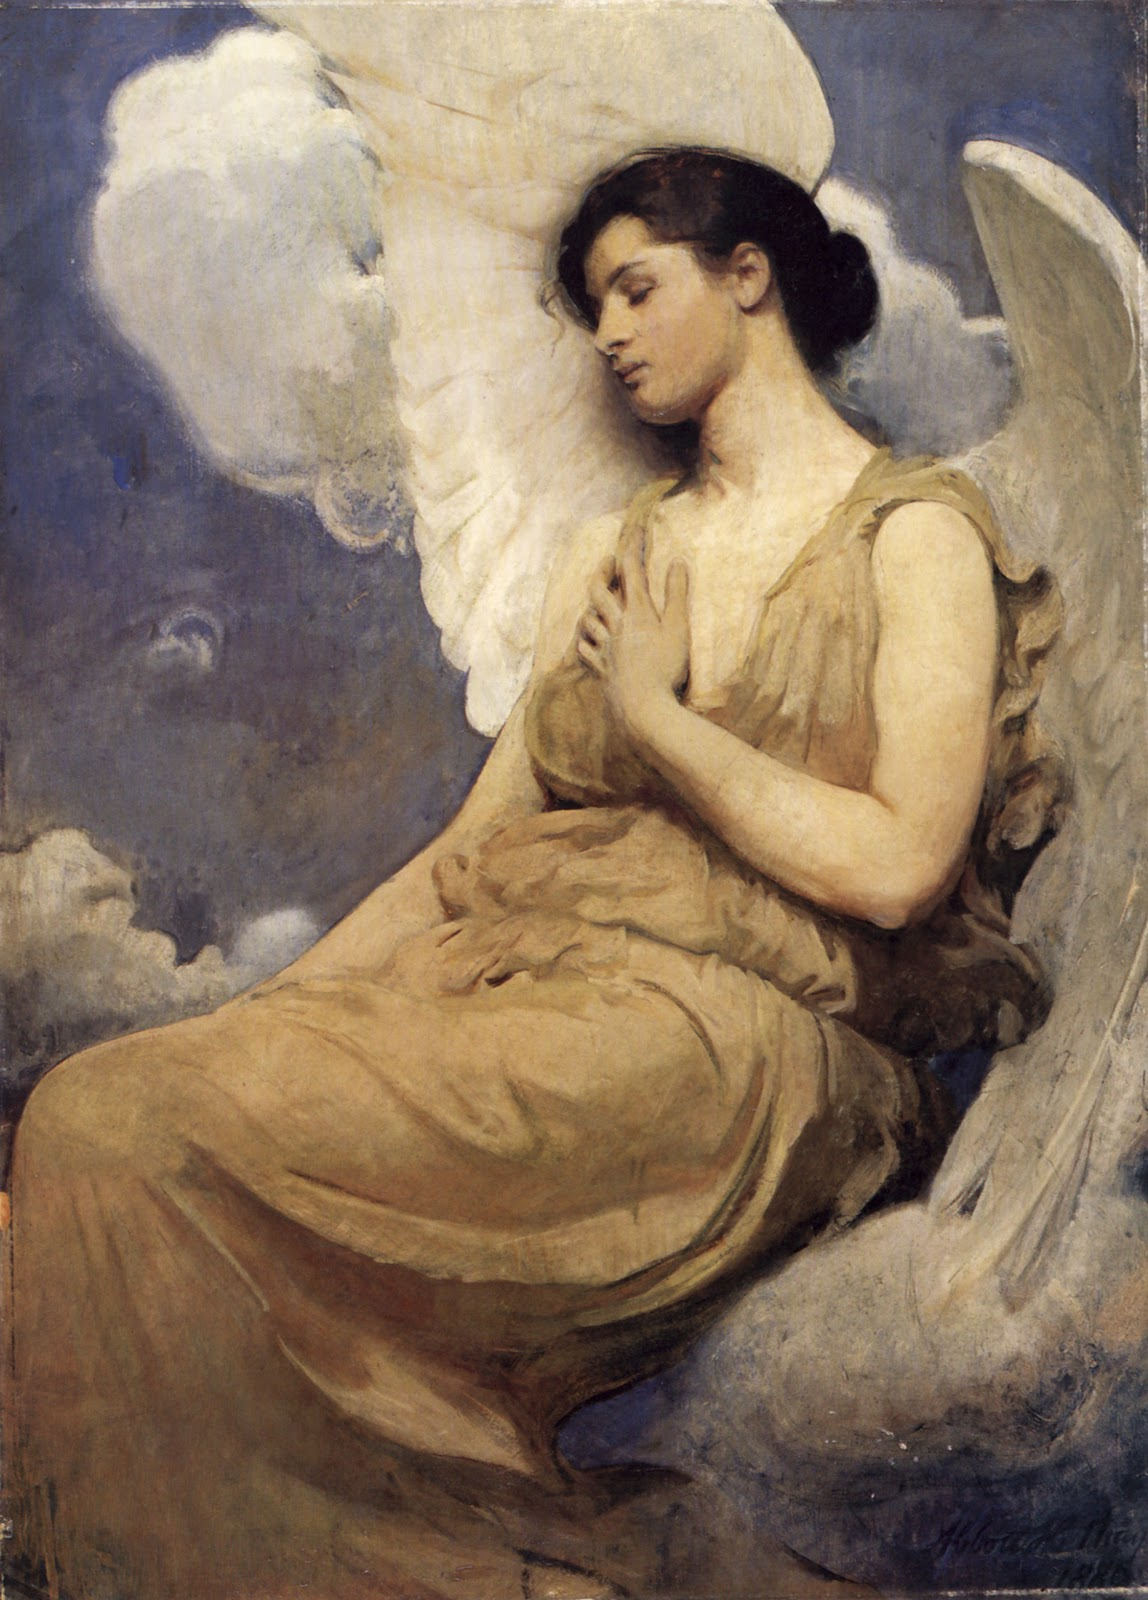 abbott handerson thayer winged figure